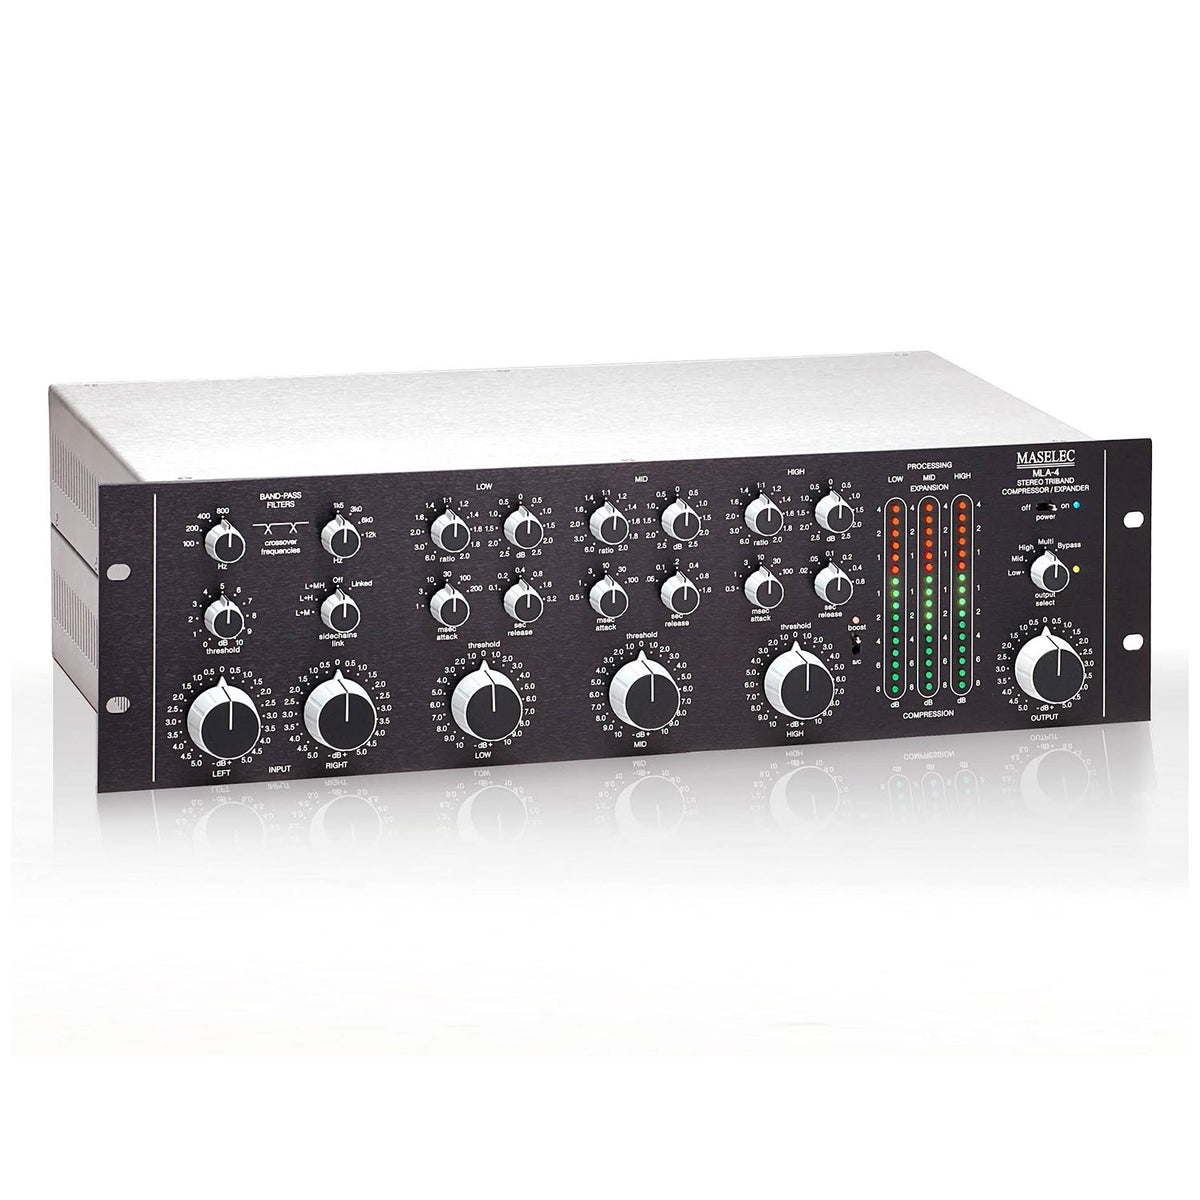 Maselec MLA-4 Multiband Compressor-Expander (OUT OF STOCK)